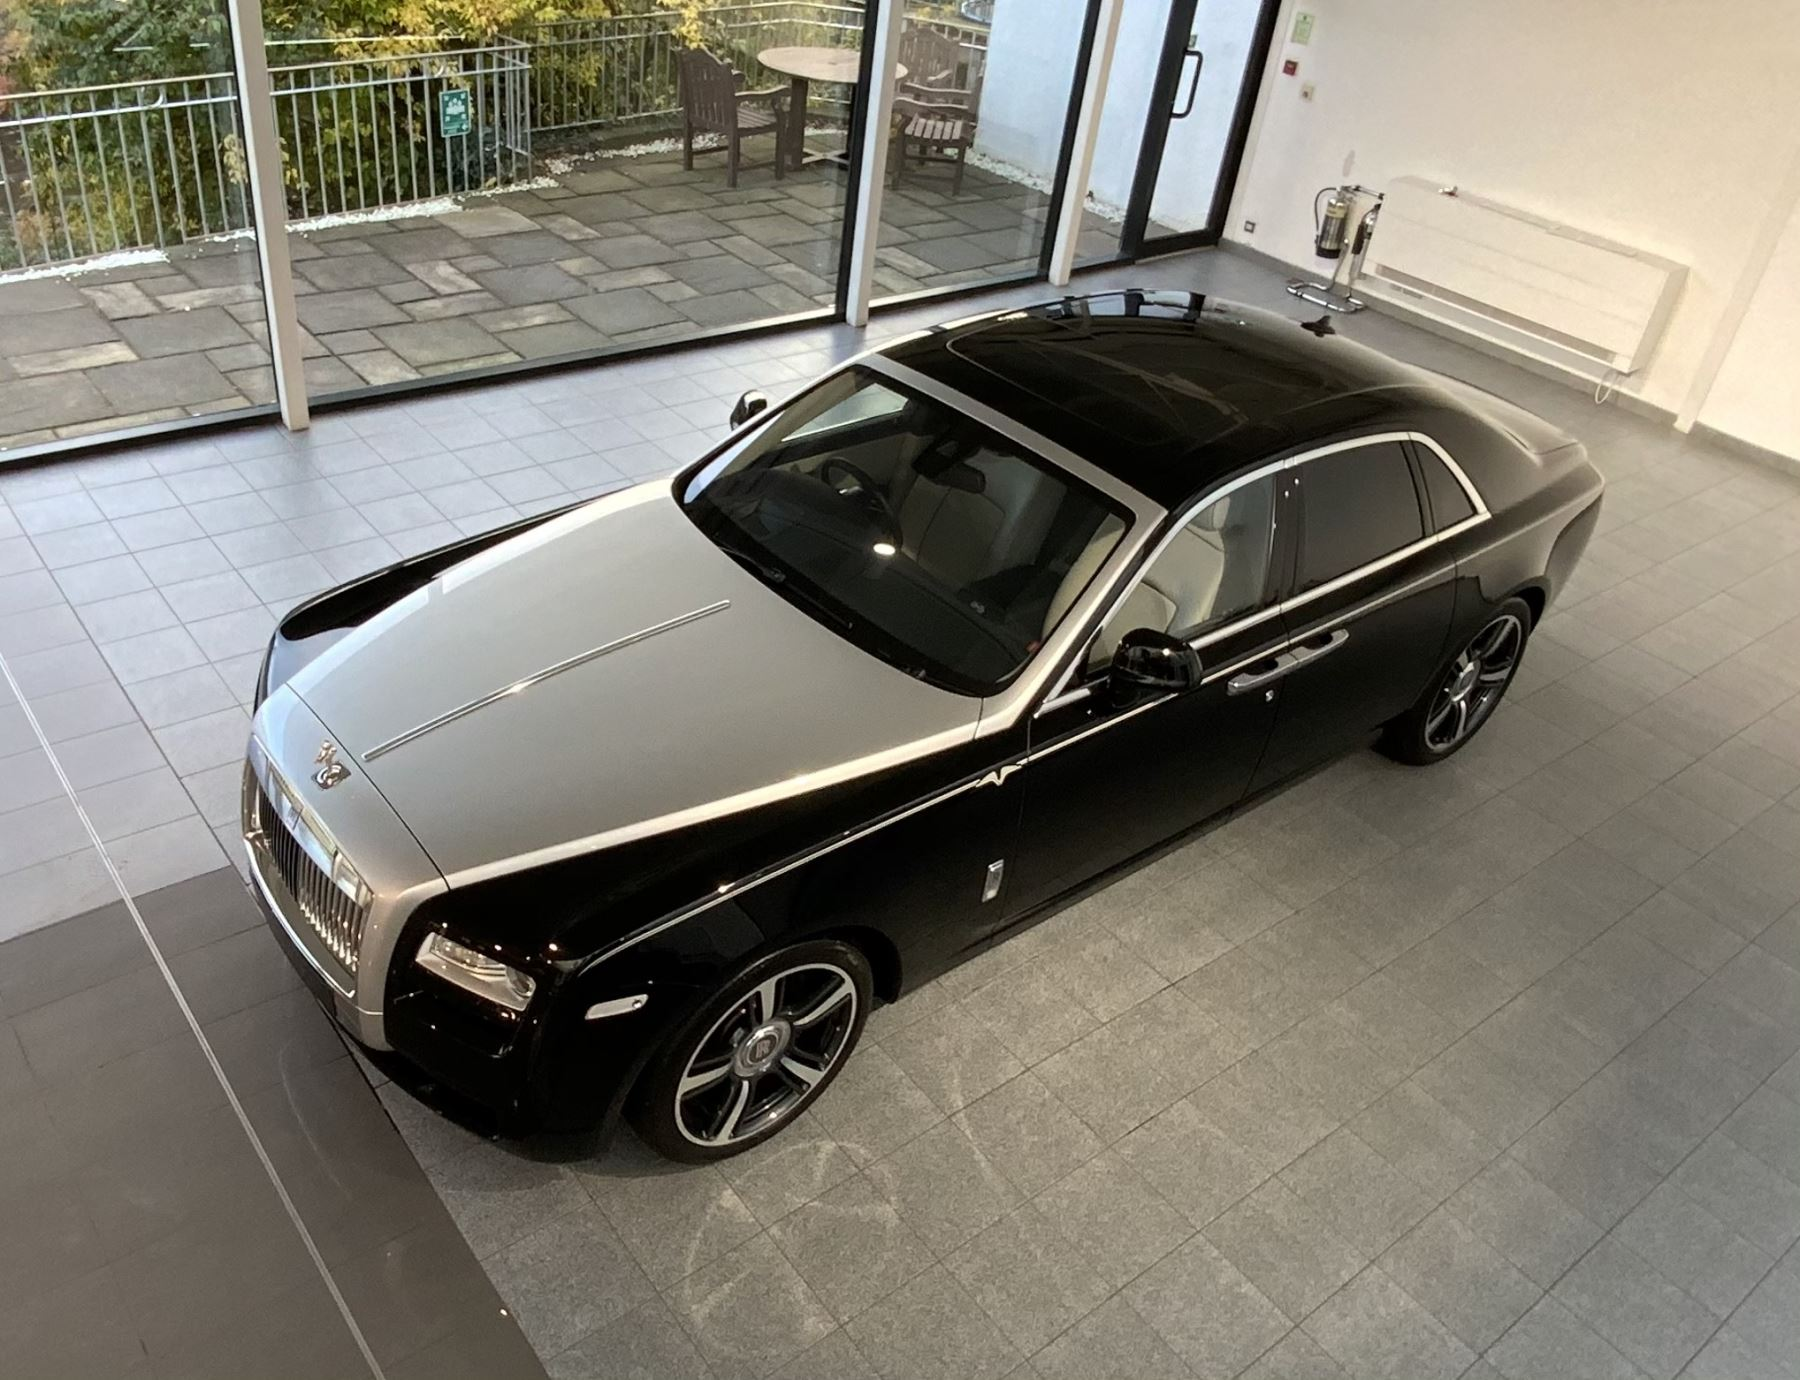 Rolls-Royce Ghost V-SPEC 4dr Auto image 4